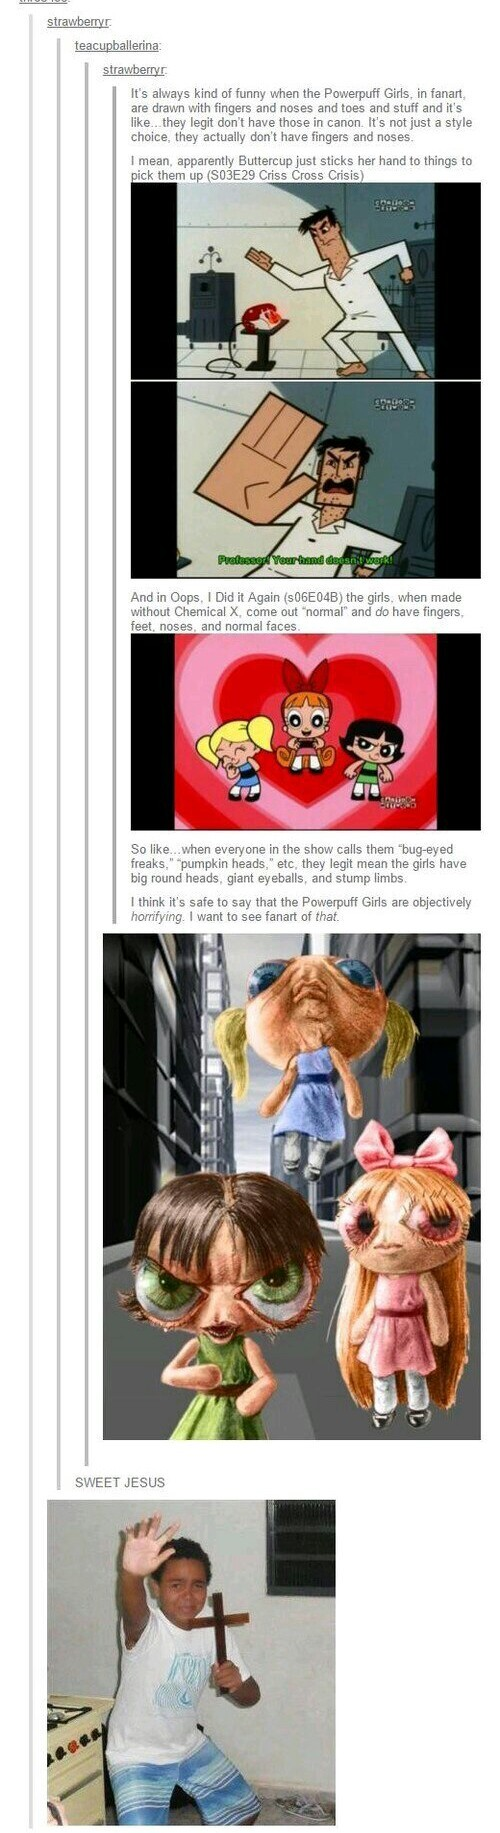 Ahh, ruining childhoods. Gets fun once you lose yourself - meme